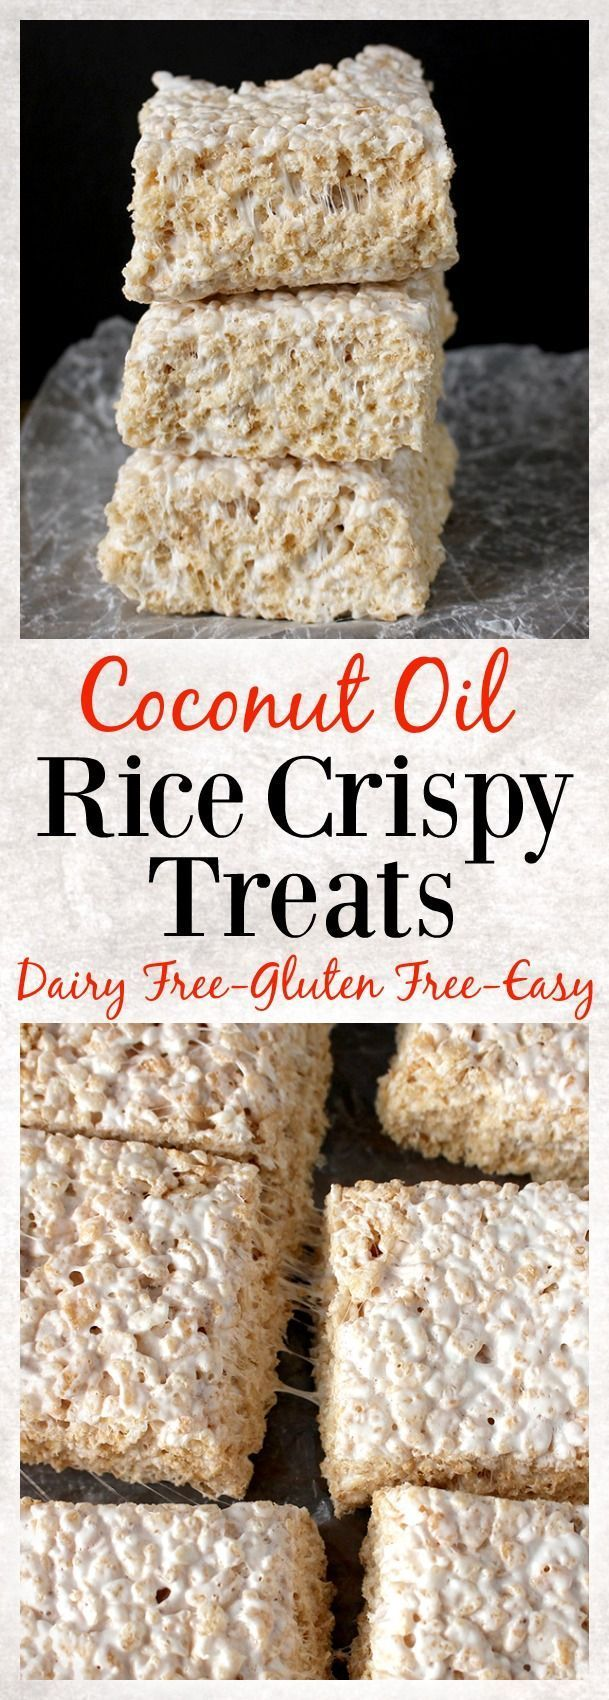 Coconut Oil Rice Crispy Treats. 3 ingredients and 10 minutes until these easy treats are ready! Gluten free, dairy free, and so delicious!!